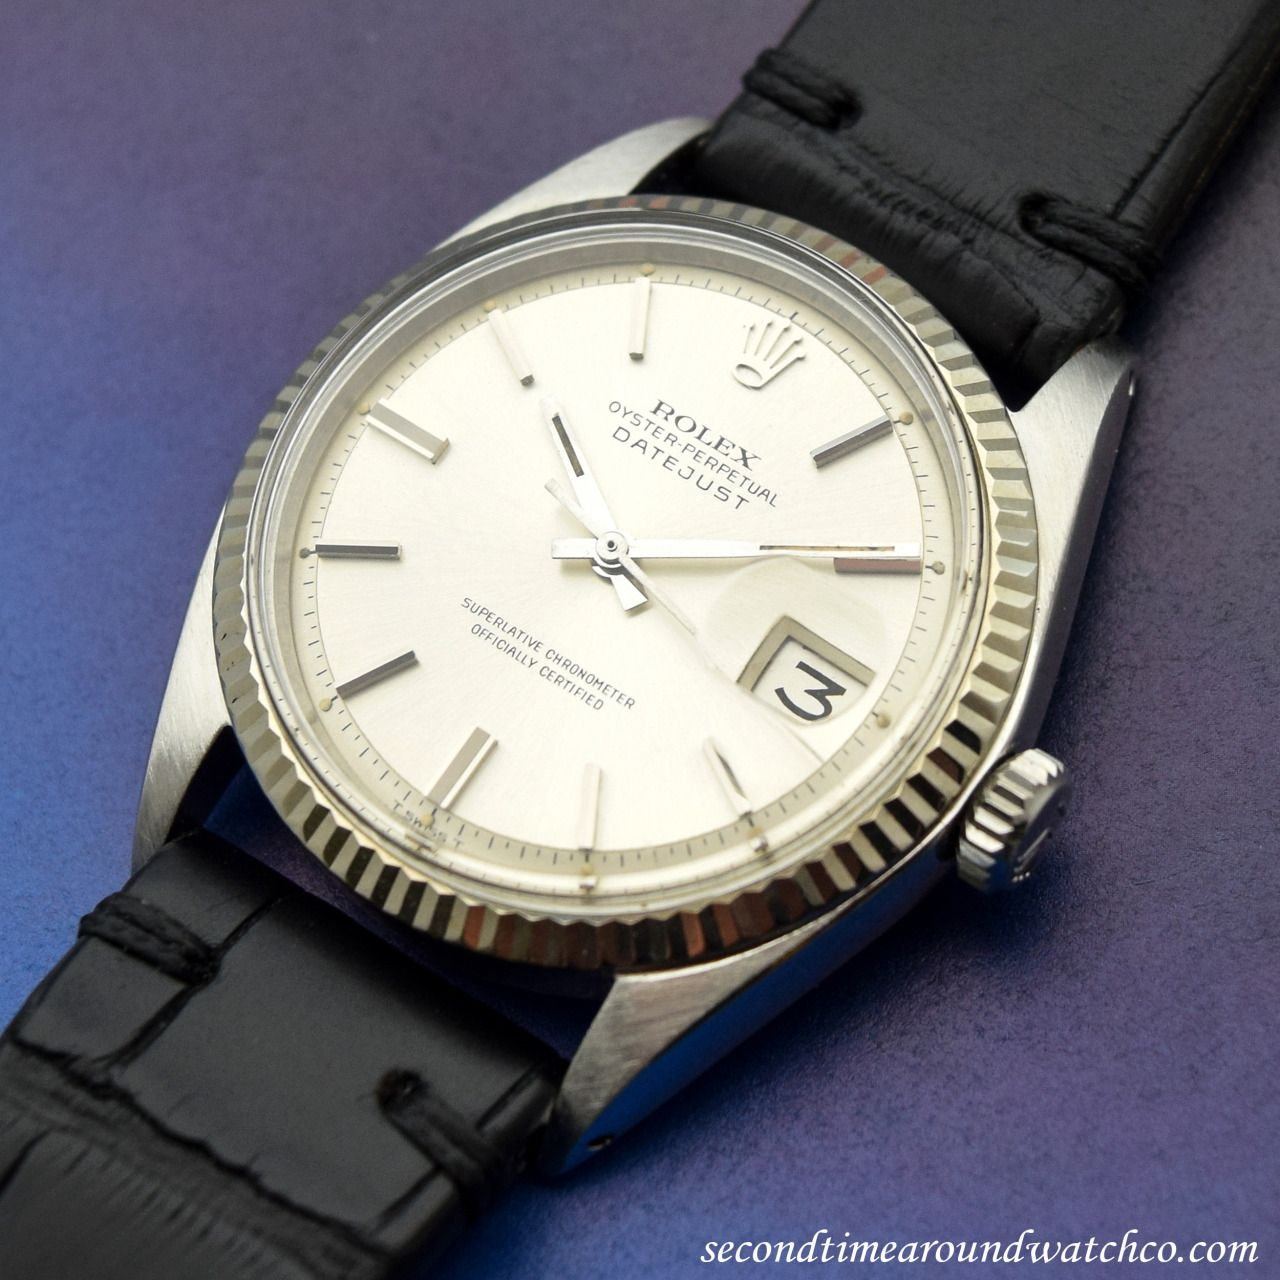 A 1970 Rolex Datejust Reference 1601 On A Vintage Style Matte Black Colored Alligator Watch Strap A Classic Exa Vintage Watches Vintage Rolex Watches For Men